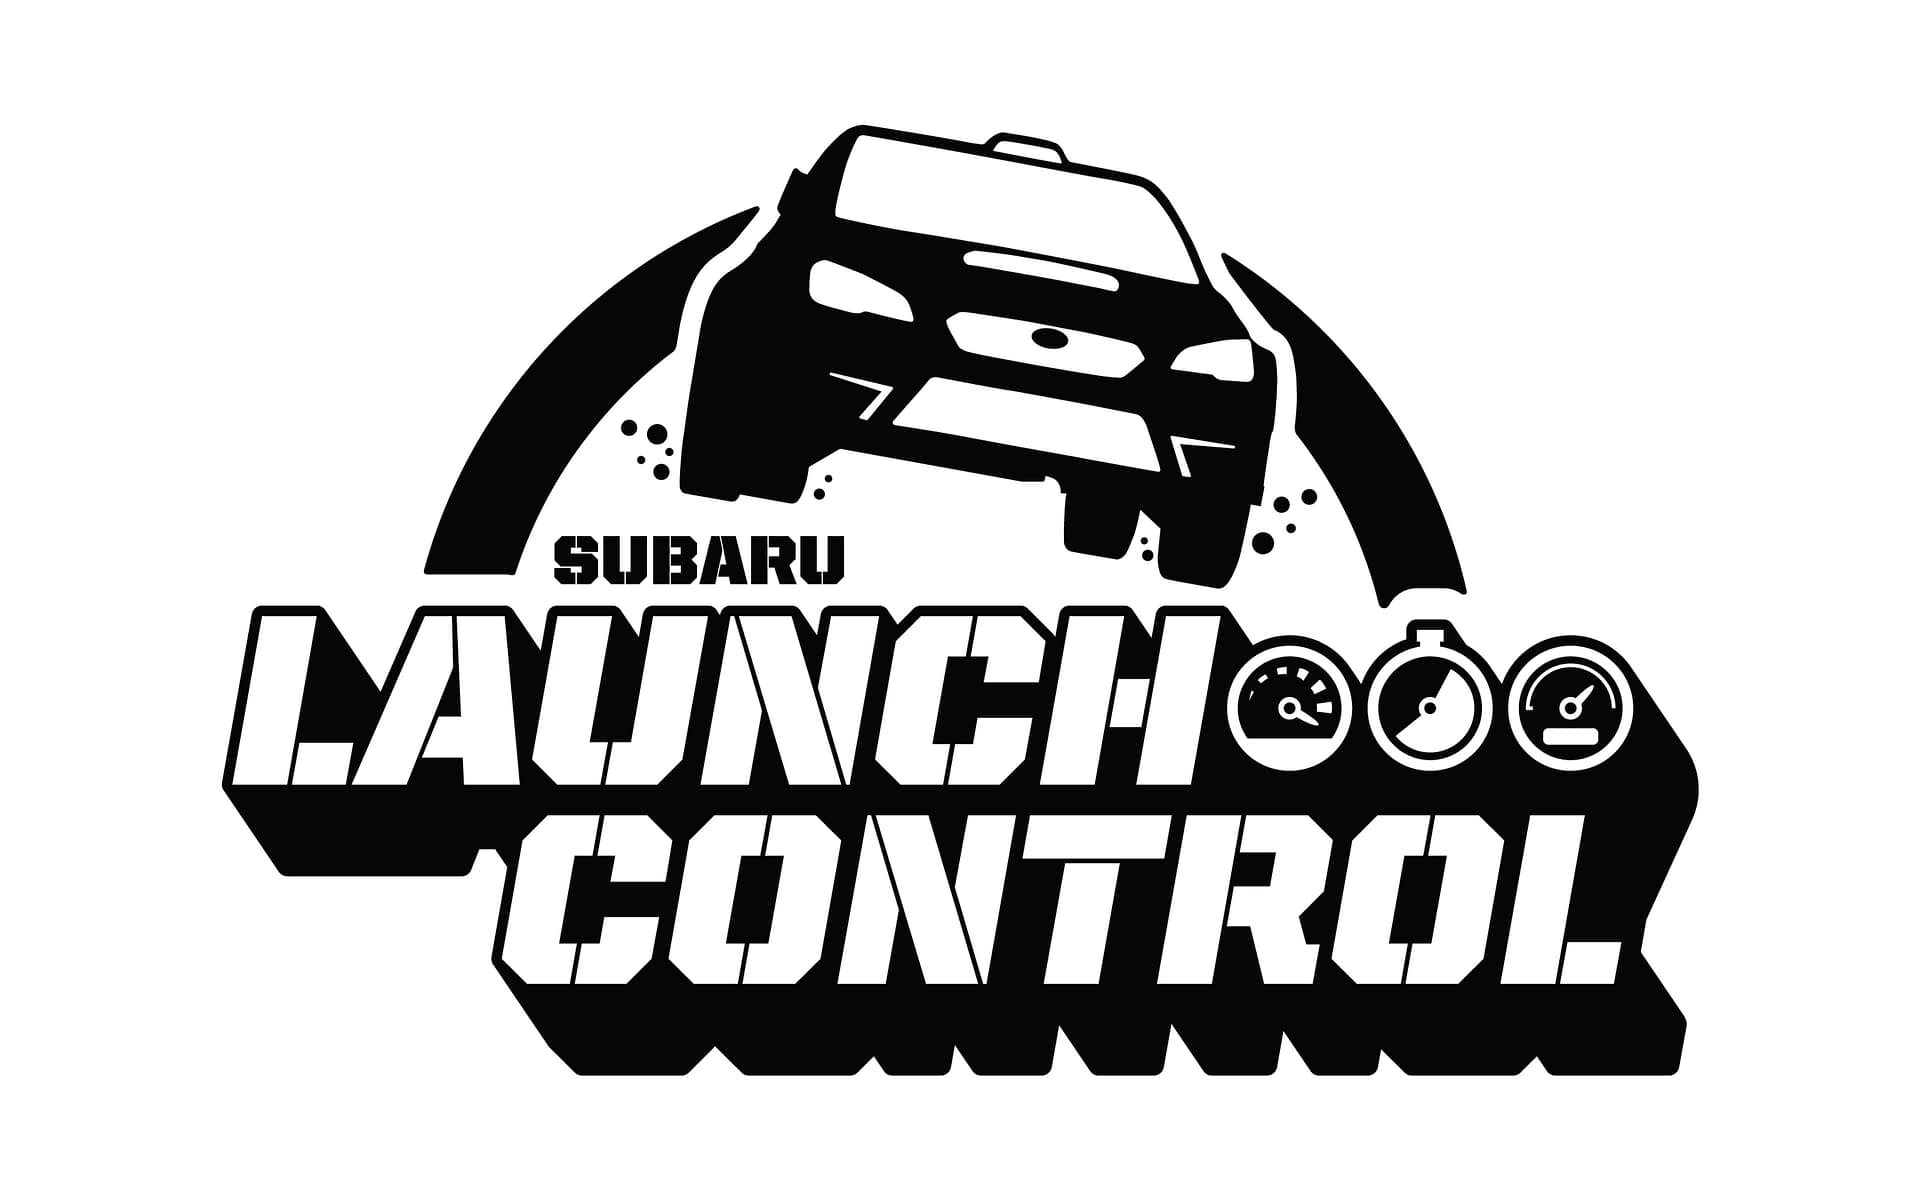 Launch Control Logo